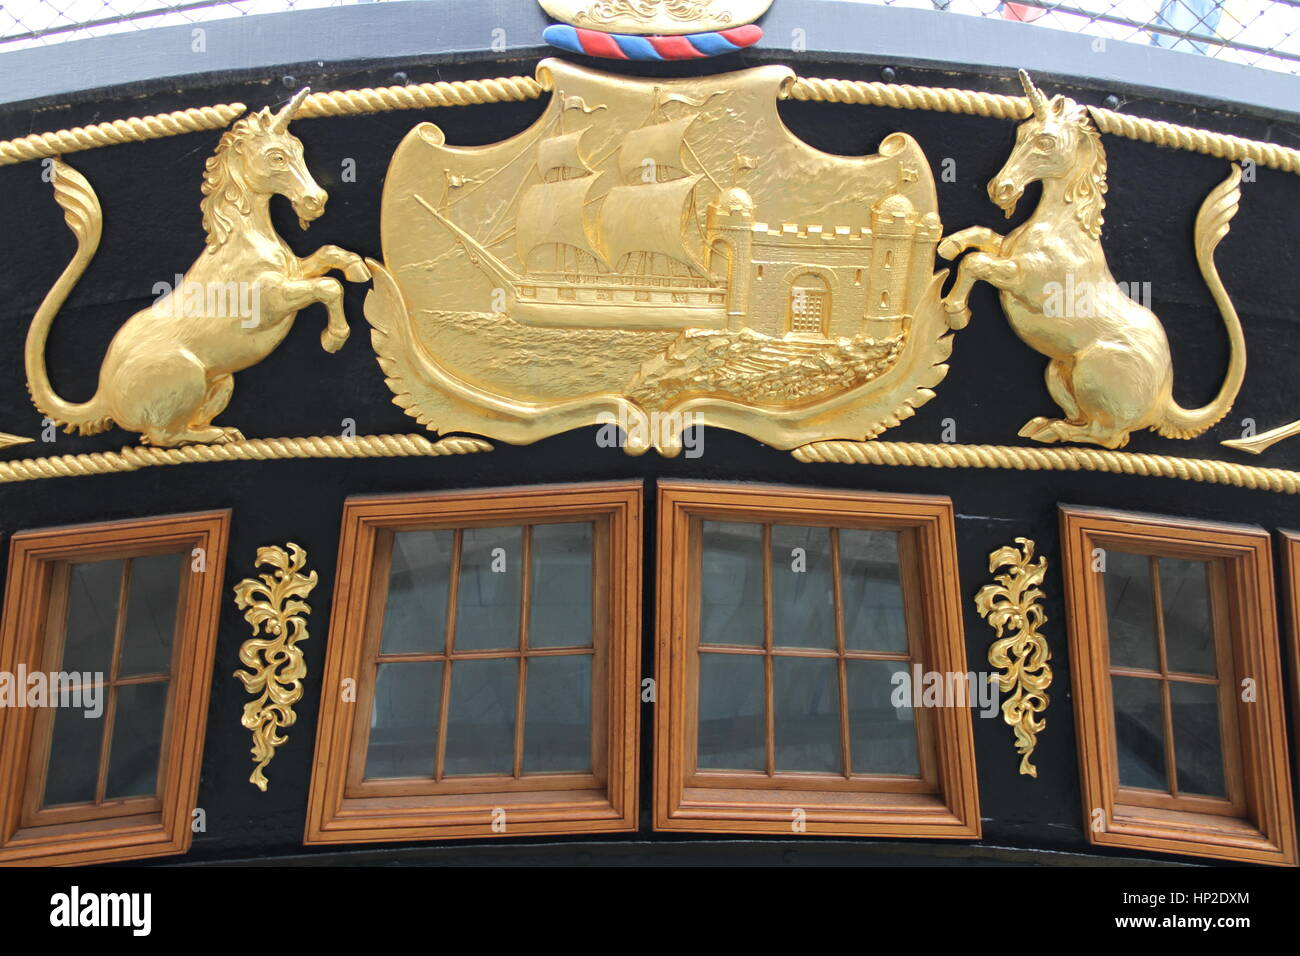 Detail from the stern of Brunel's passenger steamship SS Great Britain, Bristol. - Stock Image